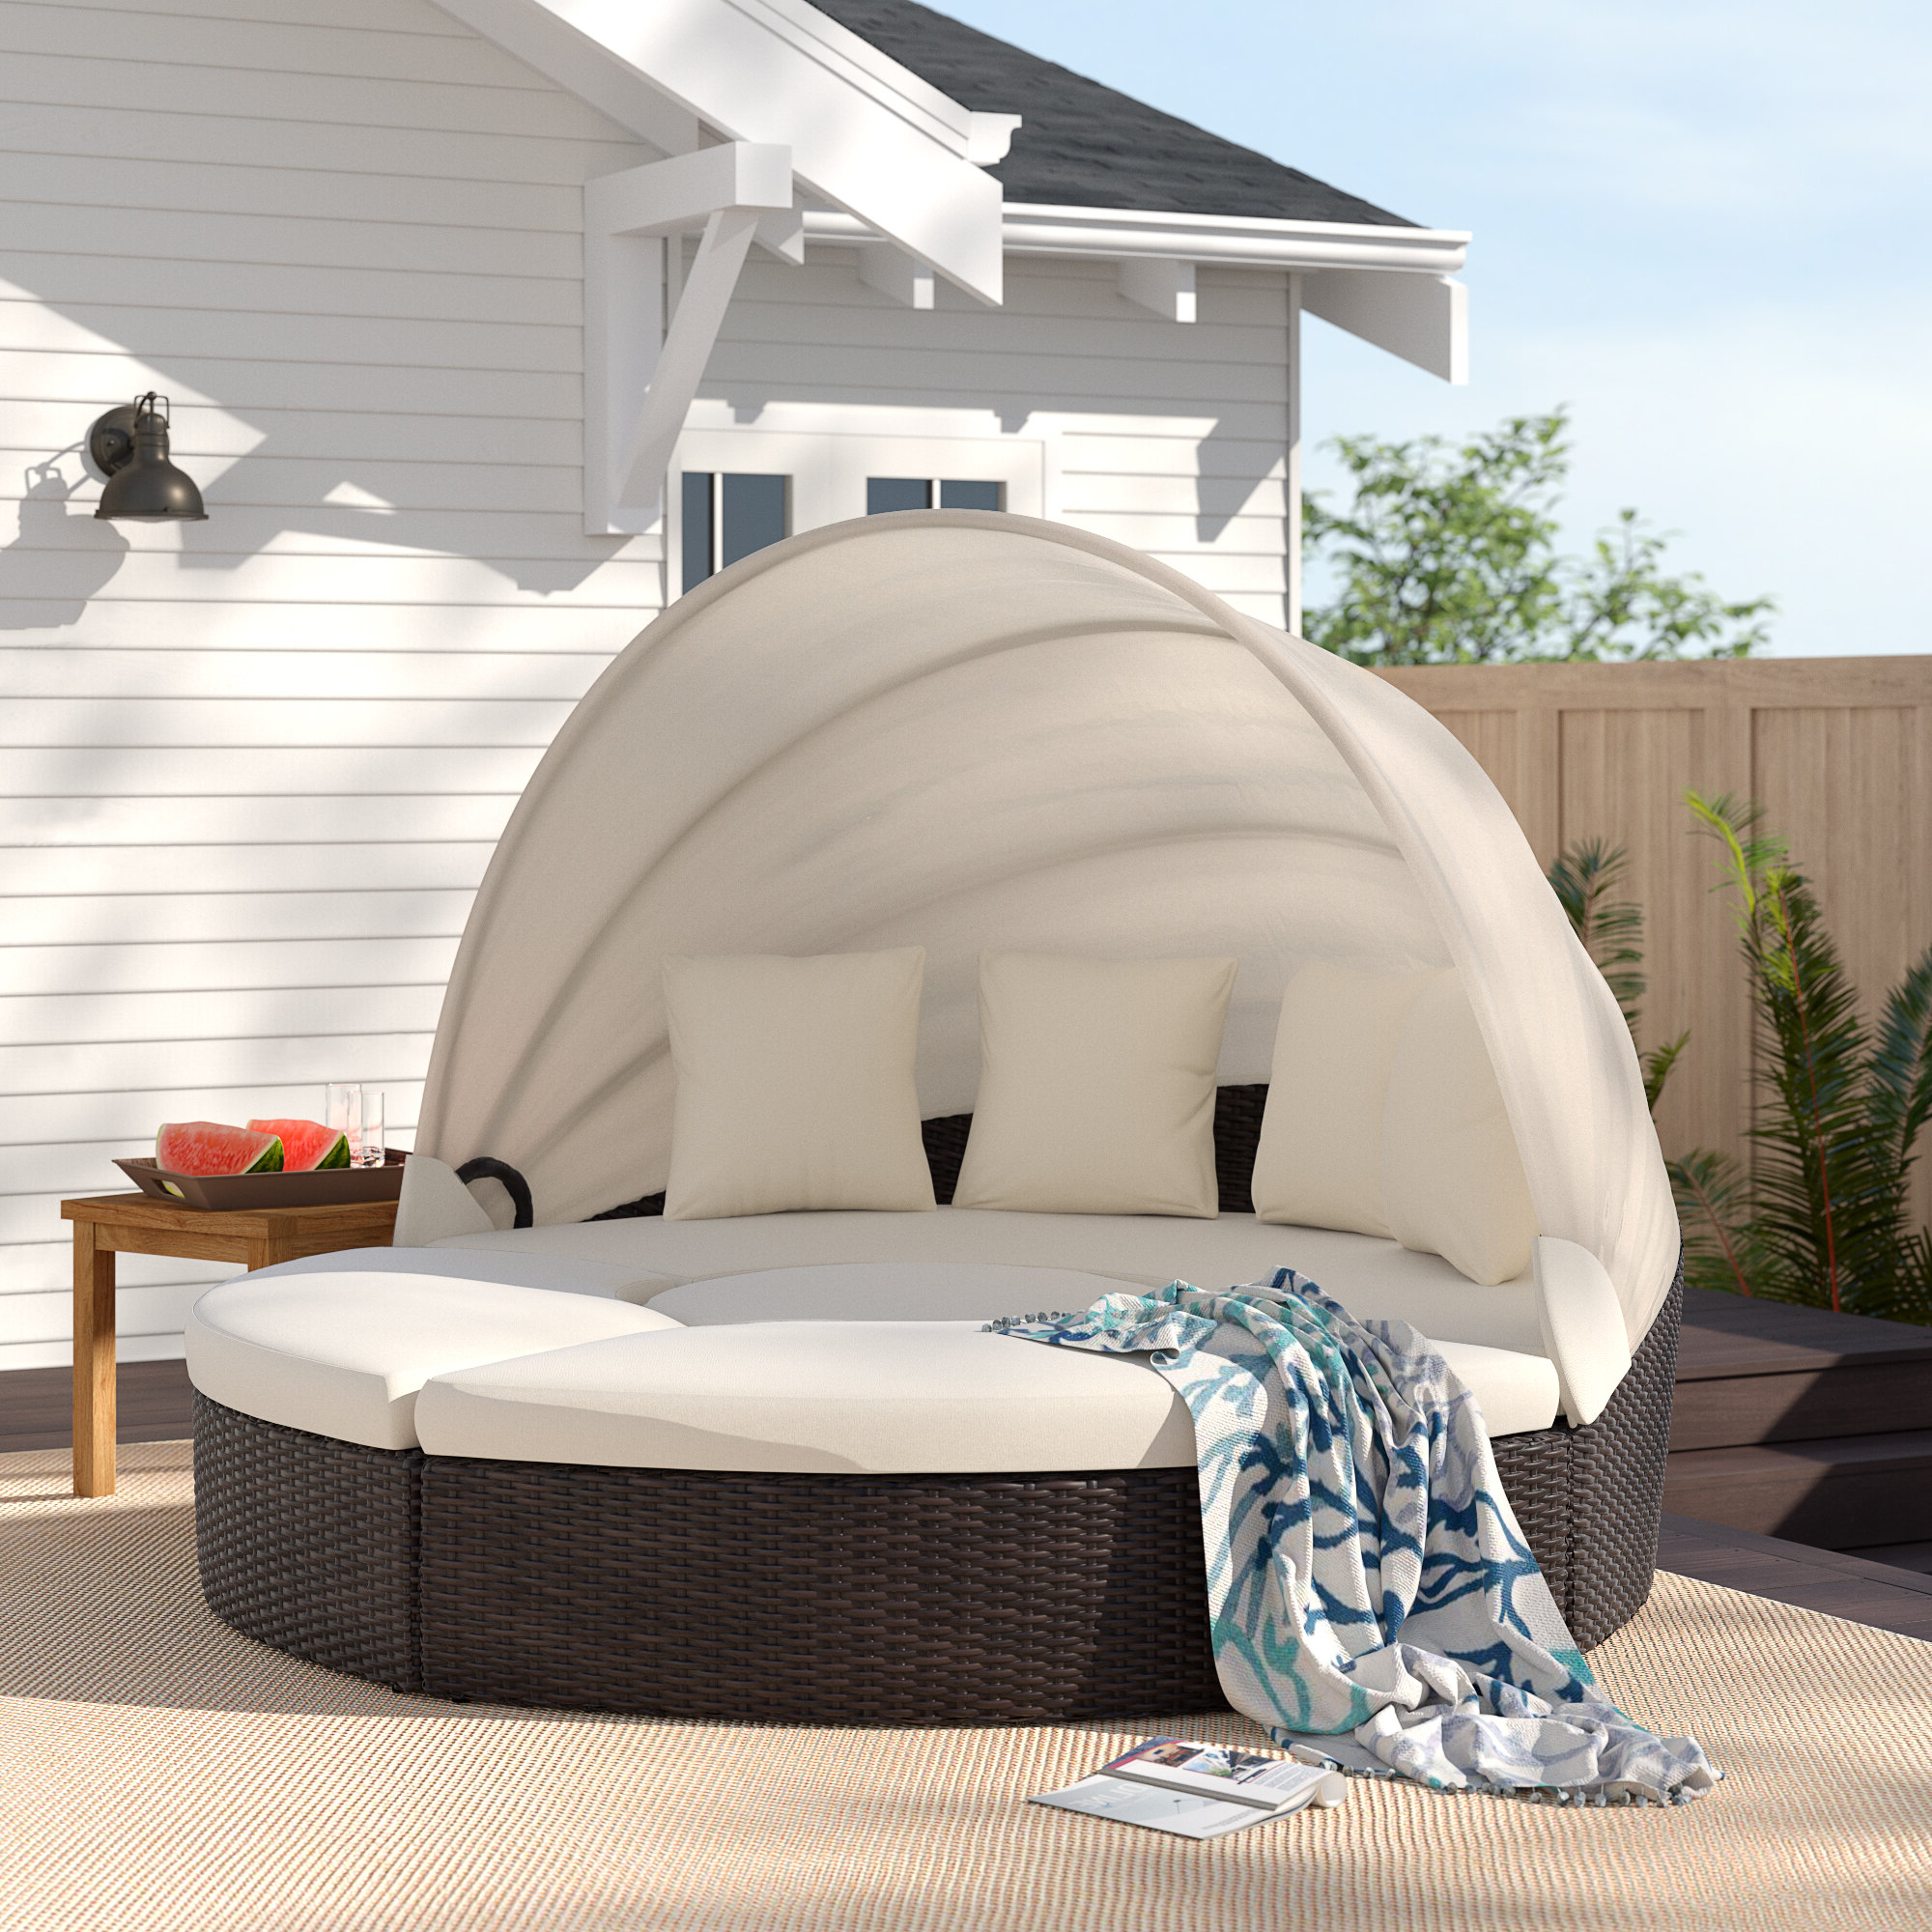 Dowling Patio Daybeds With Cushion In Fashionable Antigua Patio Daybed With Cushions (View 7 of 25)